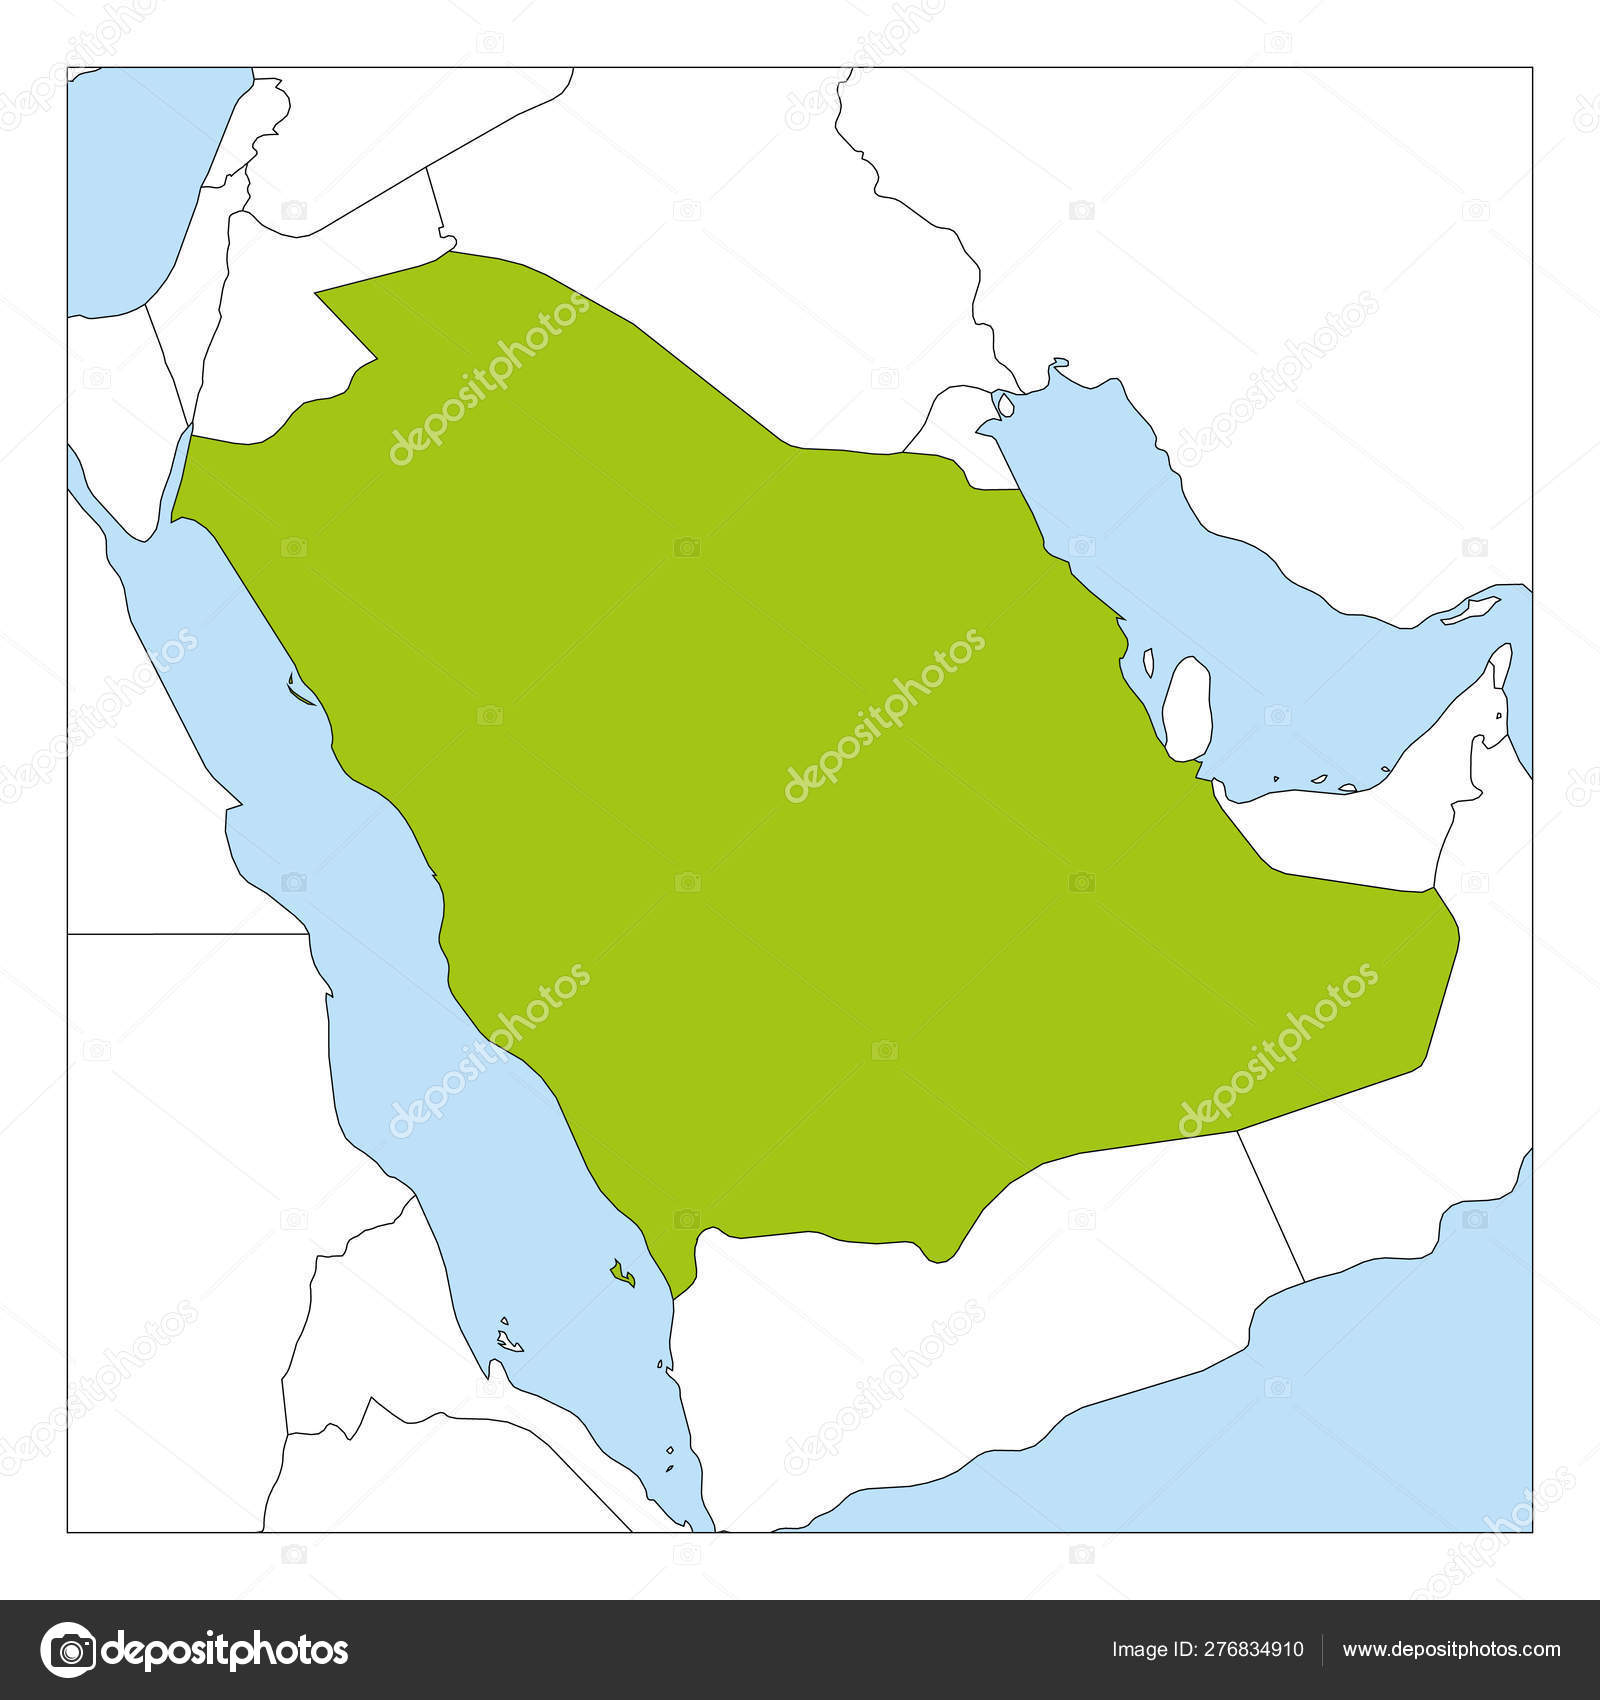 Map of Saudi Arabia green highlighted with neighbor ... Saudi Neighbors Map on south africa map, tunisia map, kuwait map, dubai map, iraq map, oman map, bangladesh map, germany map, yemen map, soviet union map, syria map, philippines map, singapore map, sudan map, japan map, morocco map, jordan map, ksa map, bahrain map, china map,